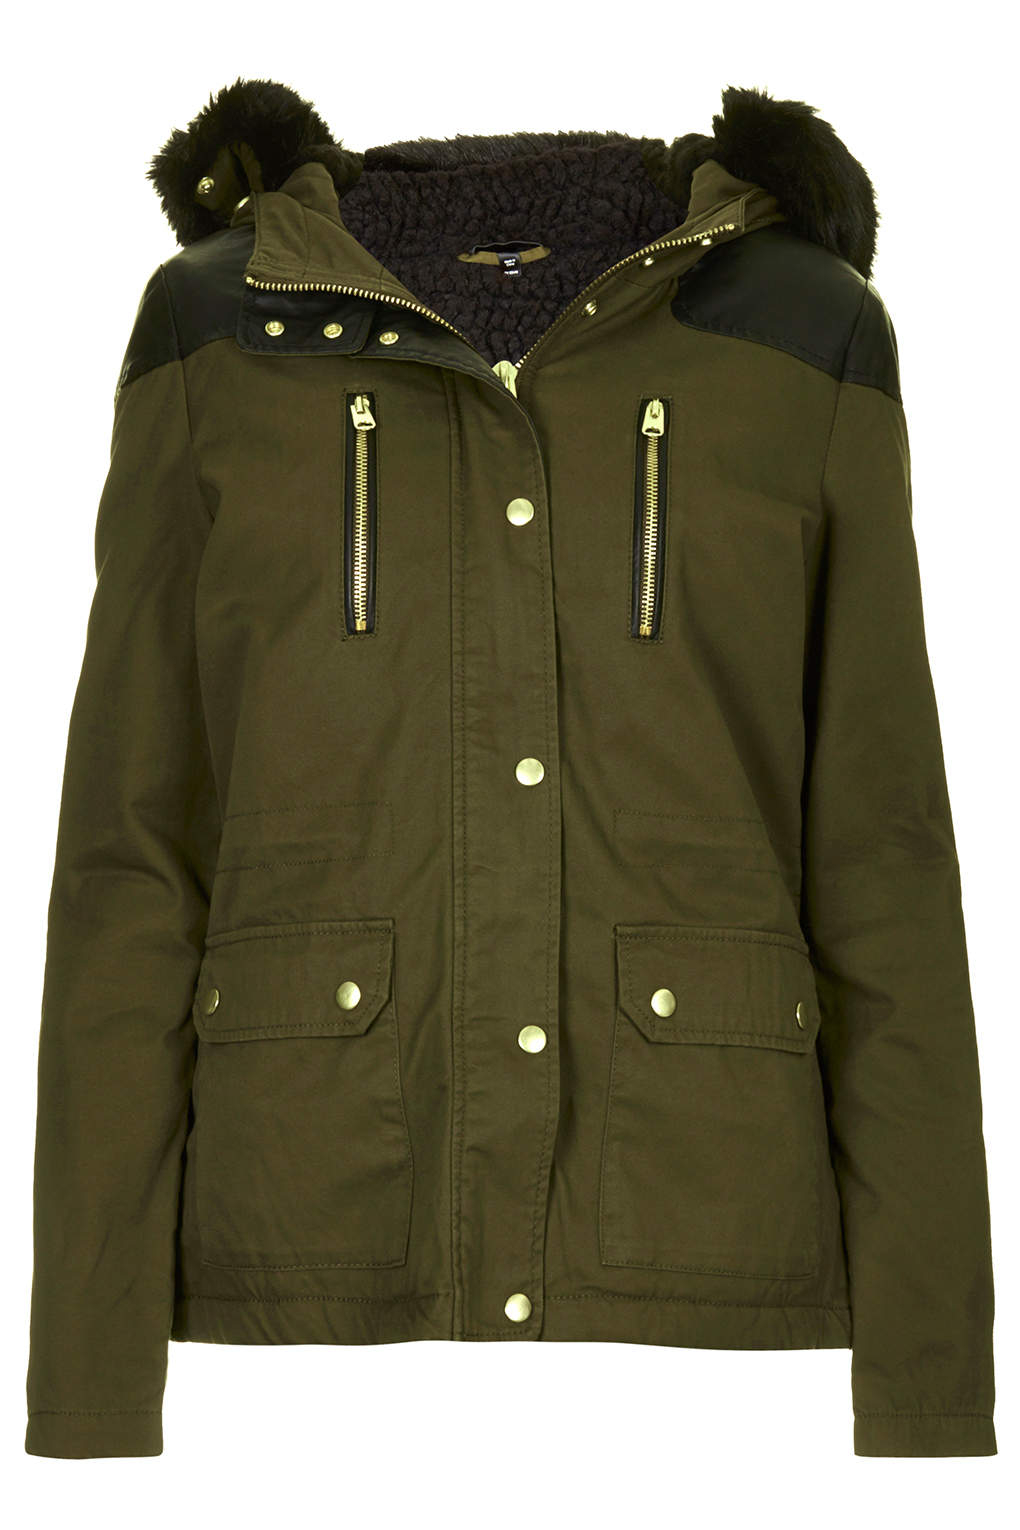 Pick the parka as the coat you can count on to take you from season to season in style. A fur- lined favourite, we've been beating the cold in this classic since the Mods of the 60s. Whether you opt for classic camo green, fishtail styling or a cropped cut, this genius jacket is the trusty trend-setter that'll see you through from festival to.